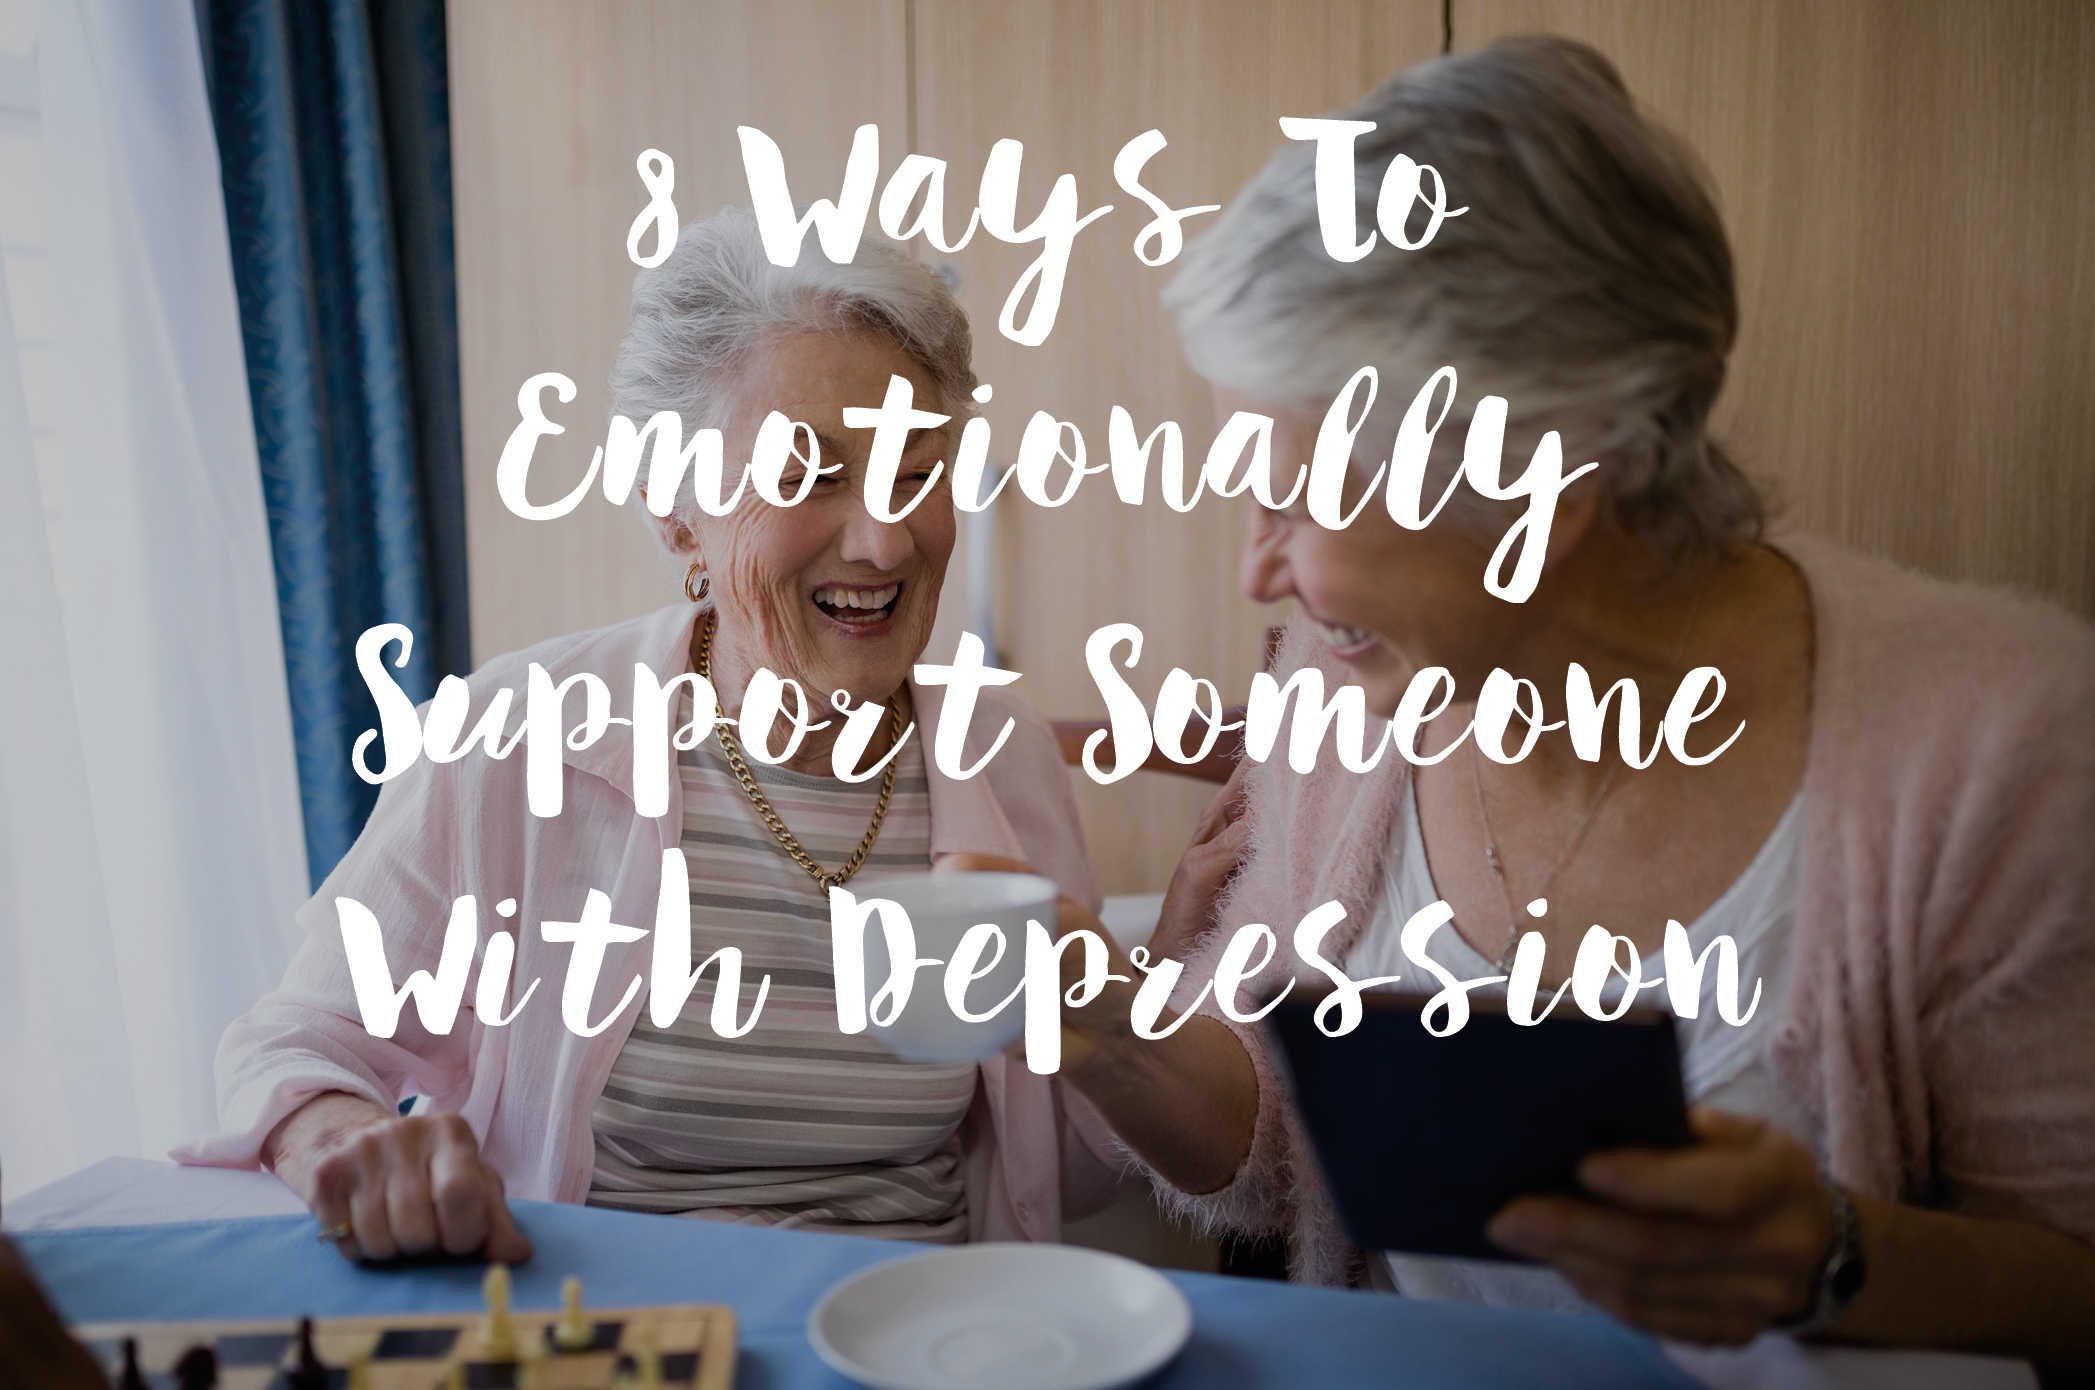 8 Ways To Emotionally Support Someone With Depression